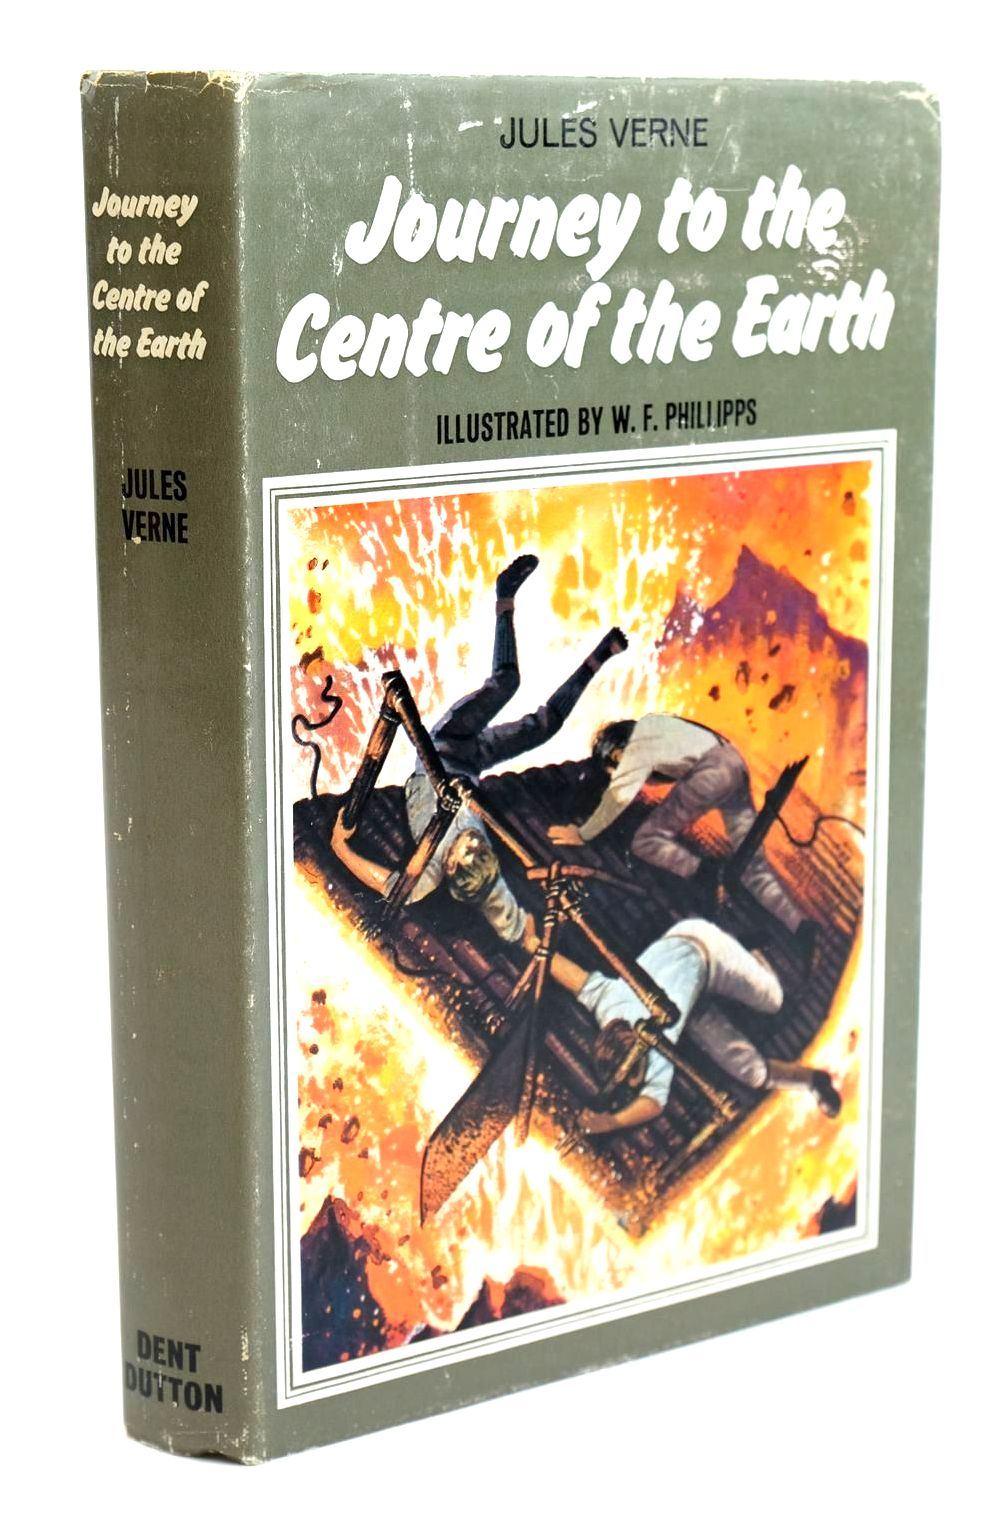 Photo of JOURNEY TO THE CENTRE OF THE EARTH written by Verne, Jules illustrated by Phillipps, W.F. published by J.M. Dent & Sons Ltd. (STOCK CODE: 1319189)  for sale by Stella & Rose's Books